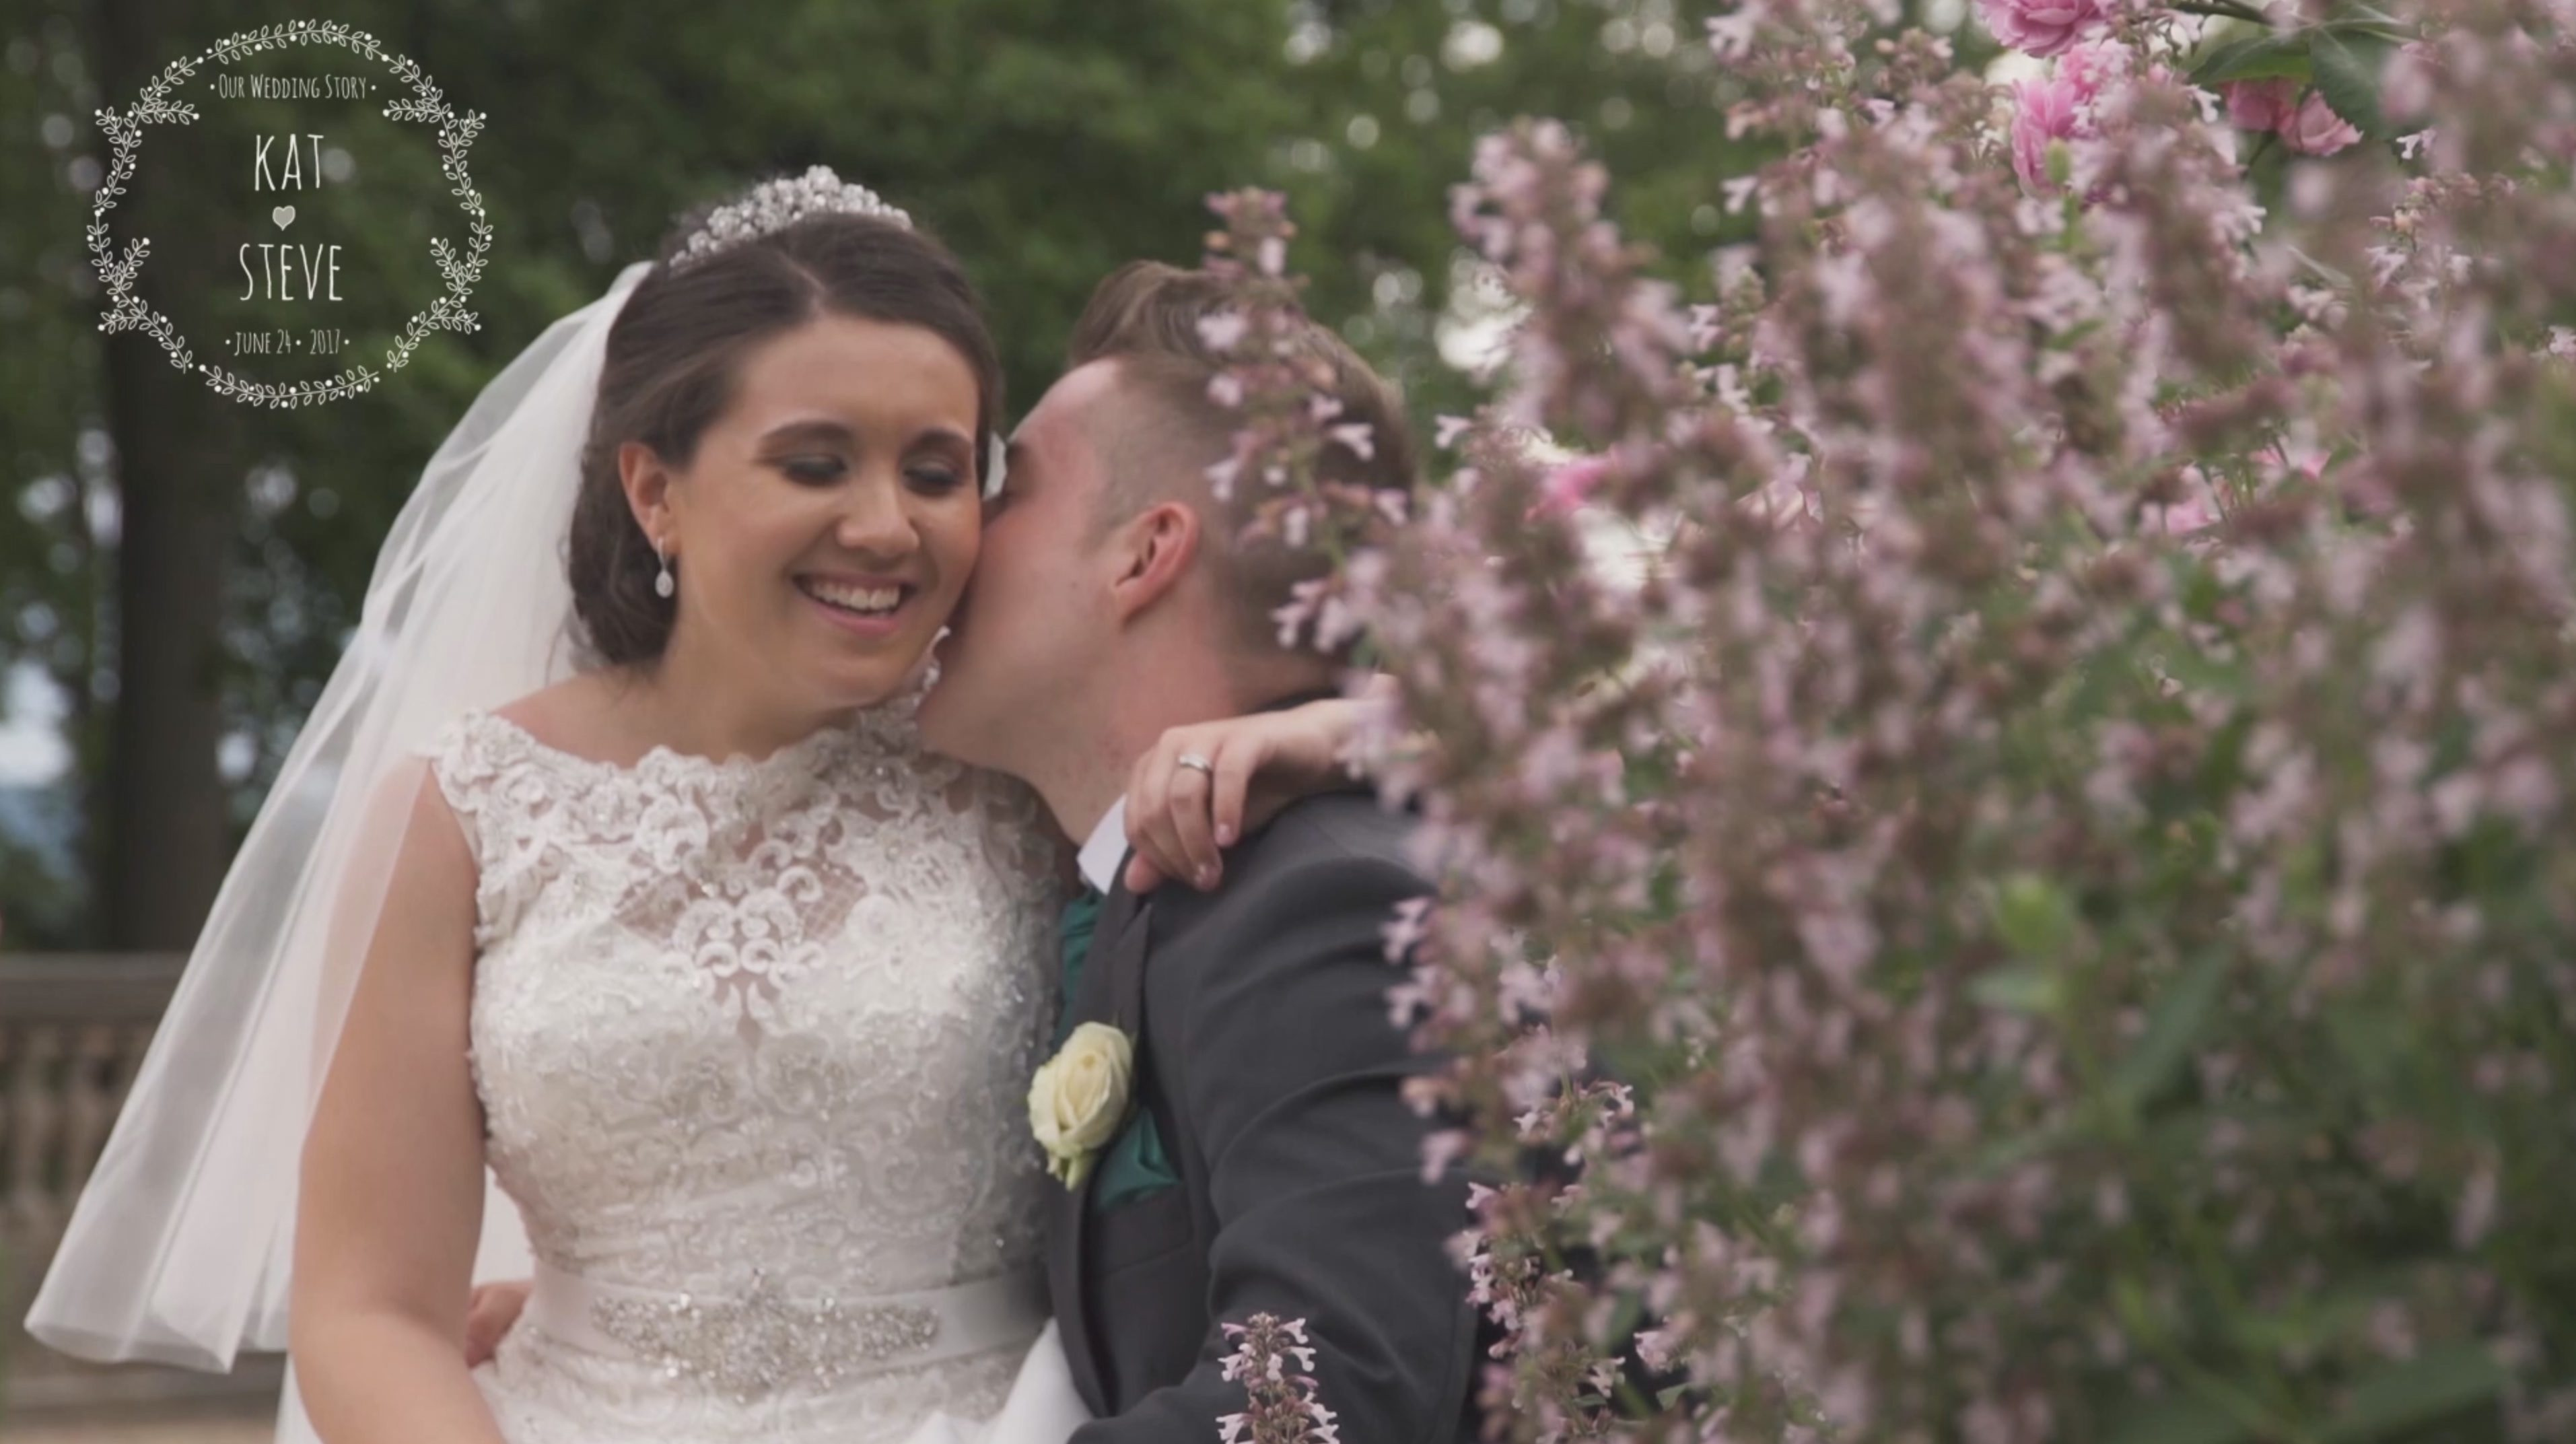 A naturally relaxed wedding day at Wood Norton Hotel, Evesham